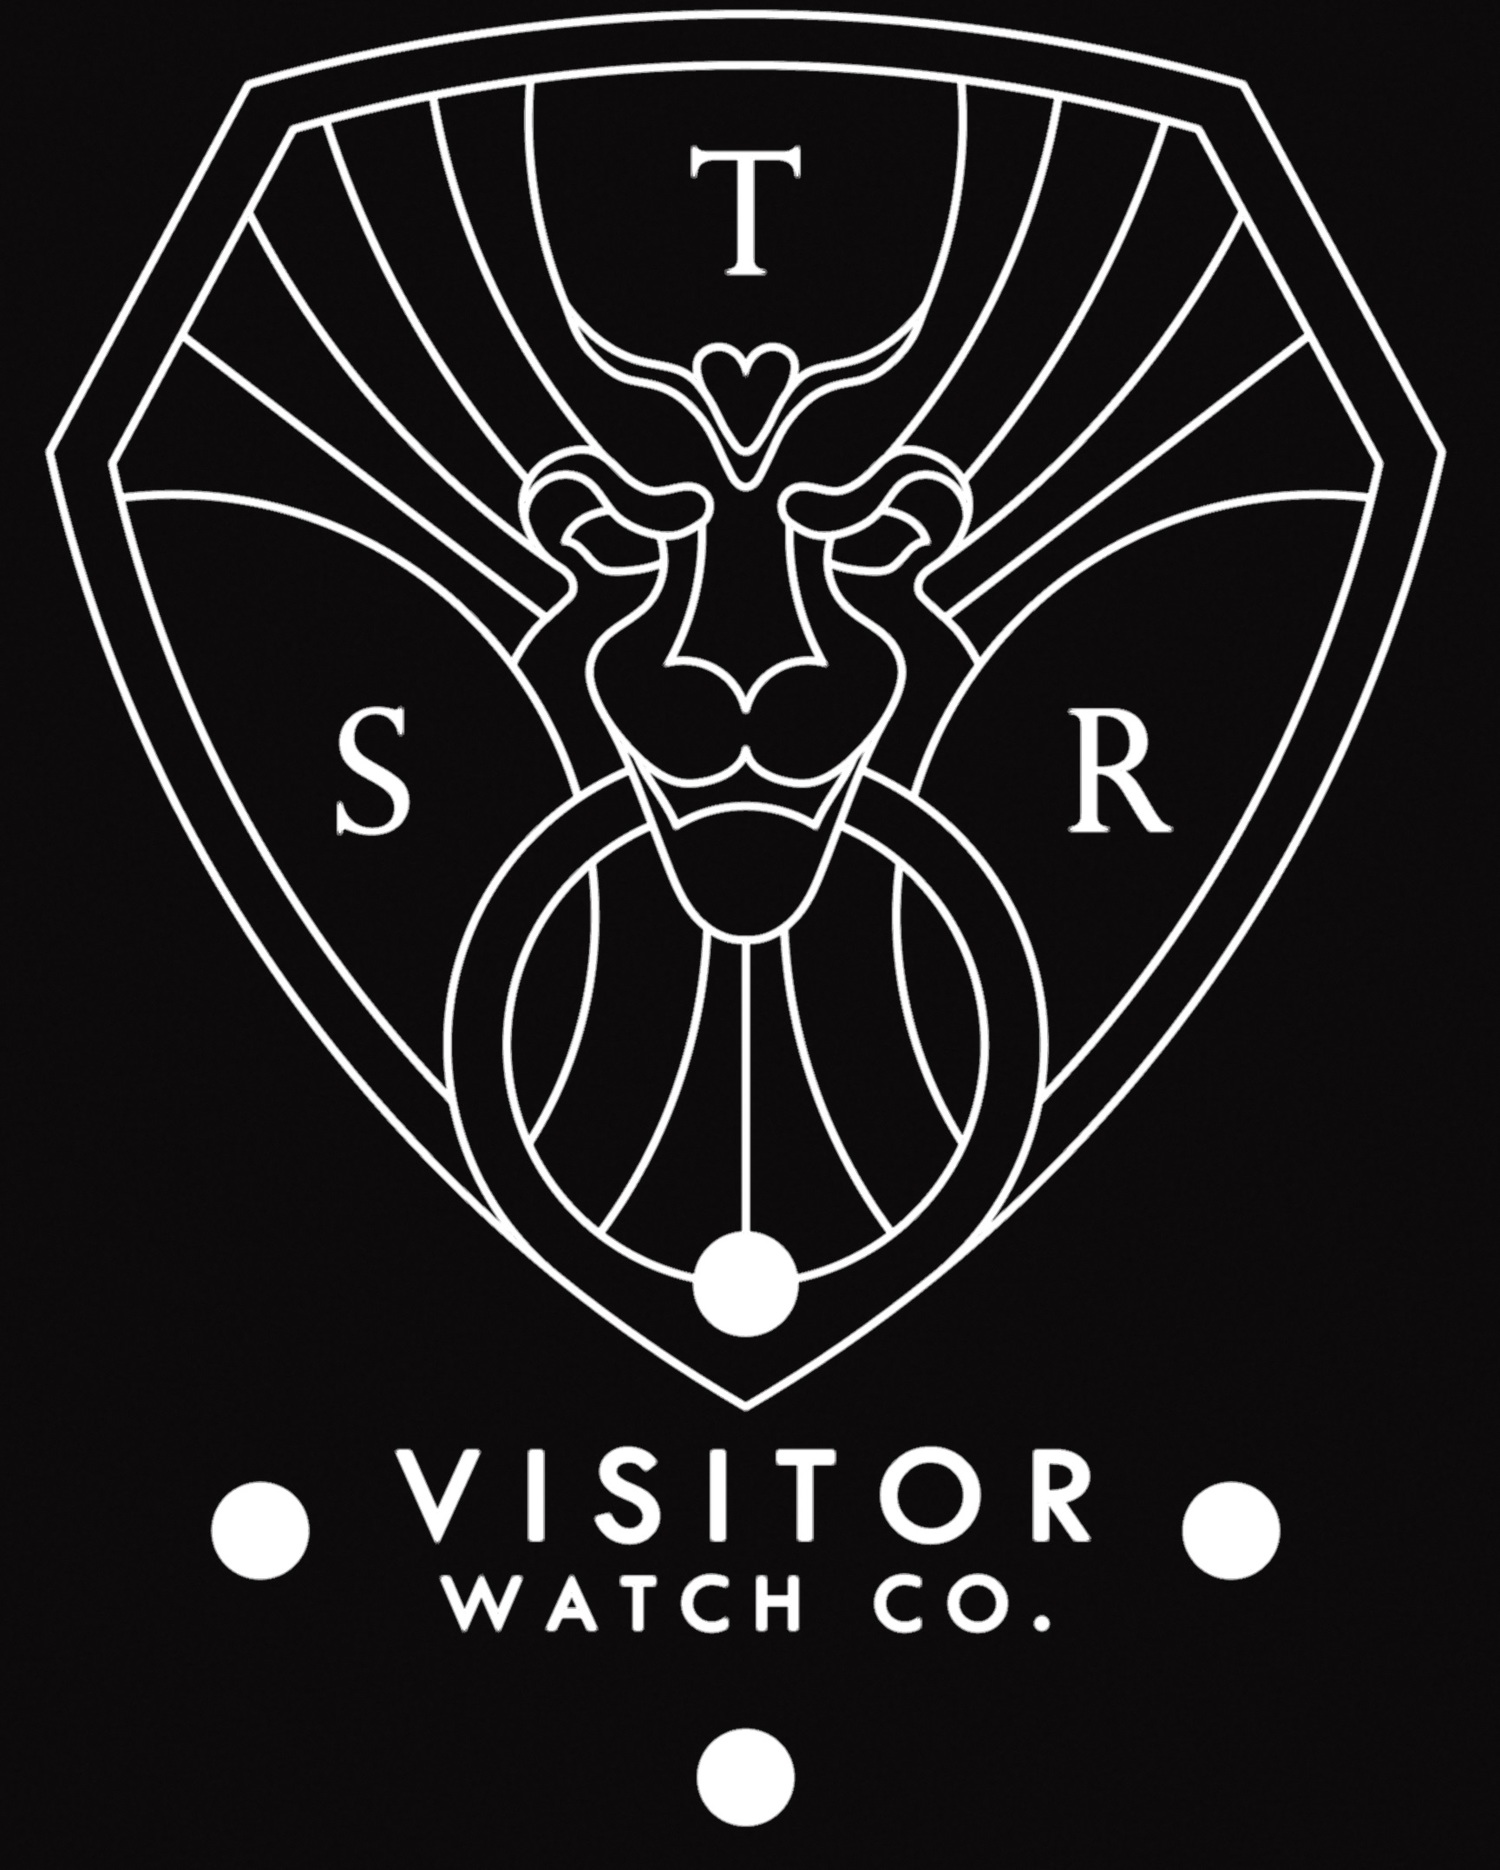 Visitor Watch Co.